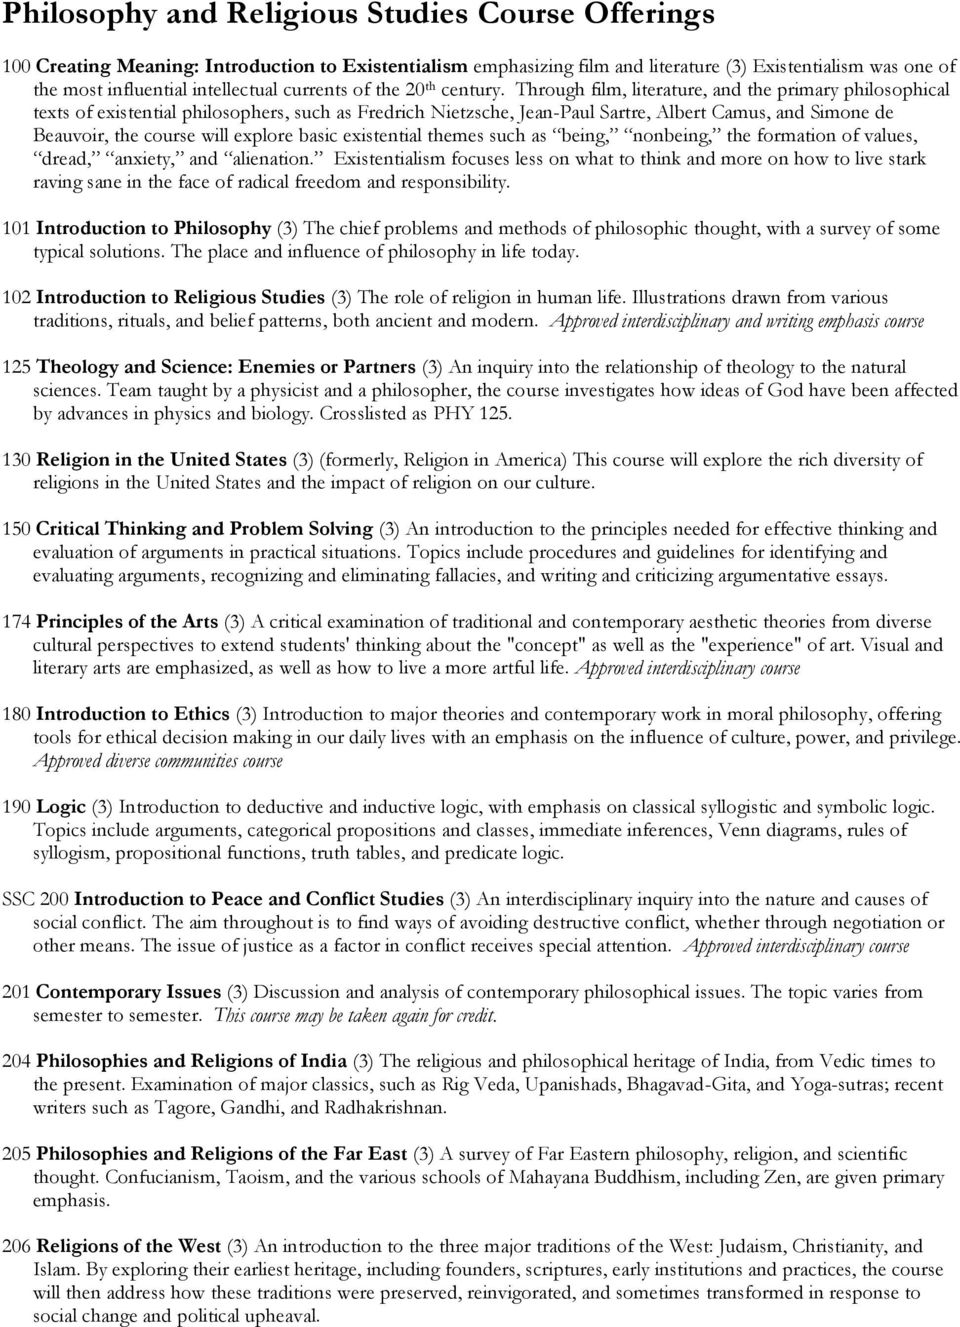 Philosophy And Religious Studies Course Offerings Pdf Logic Venn Diagram Problems Through Film Literature The Primary Philosophical Texts Of Existential Philosophers Such As